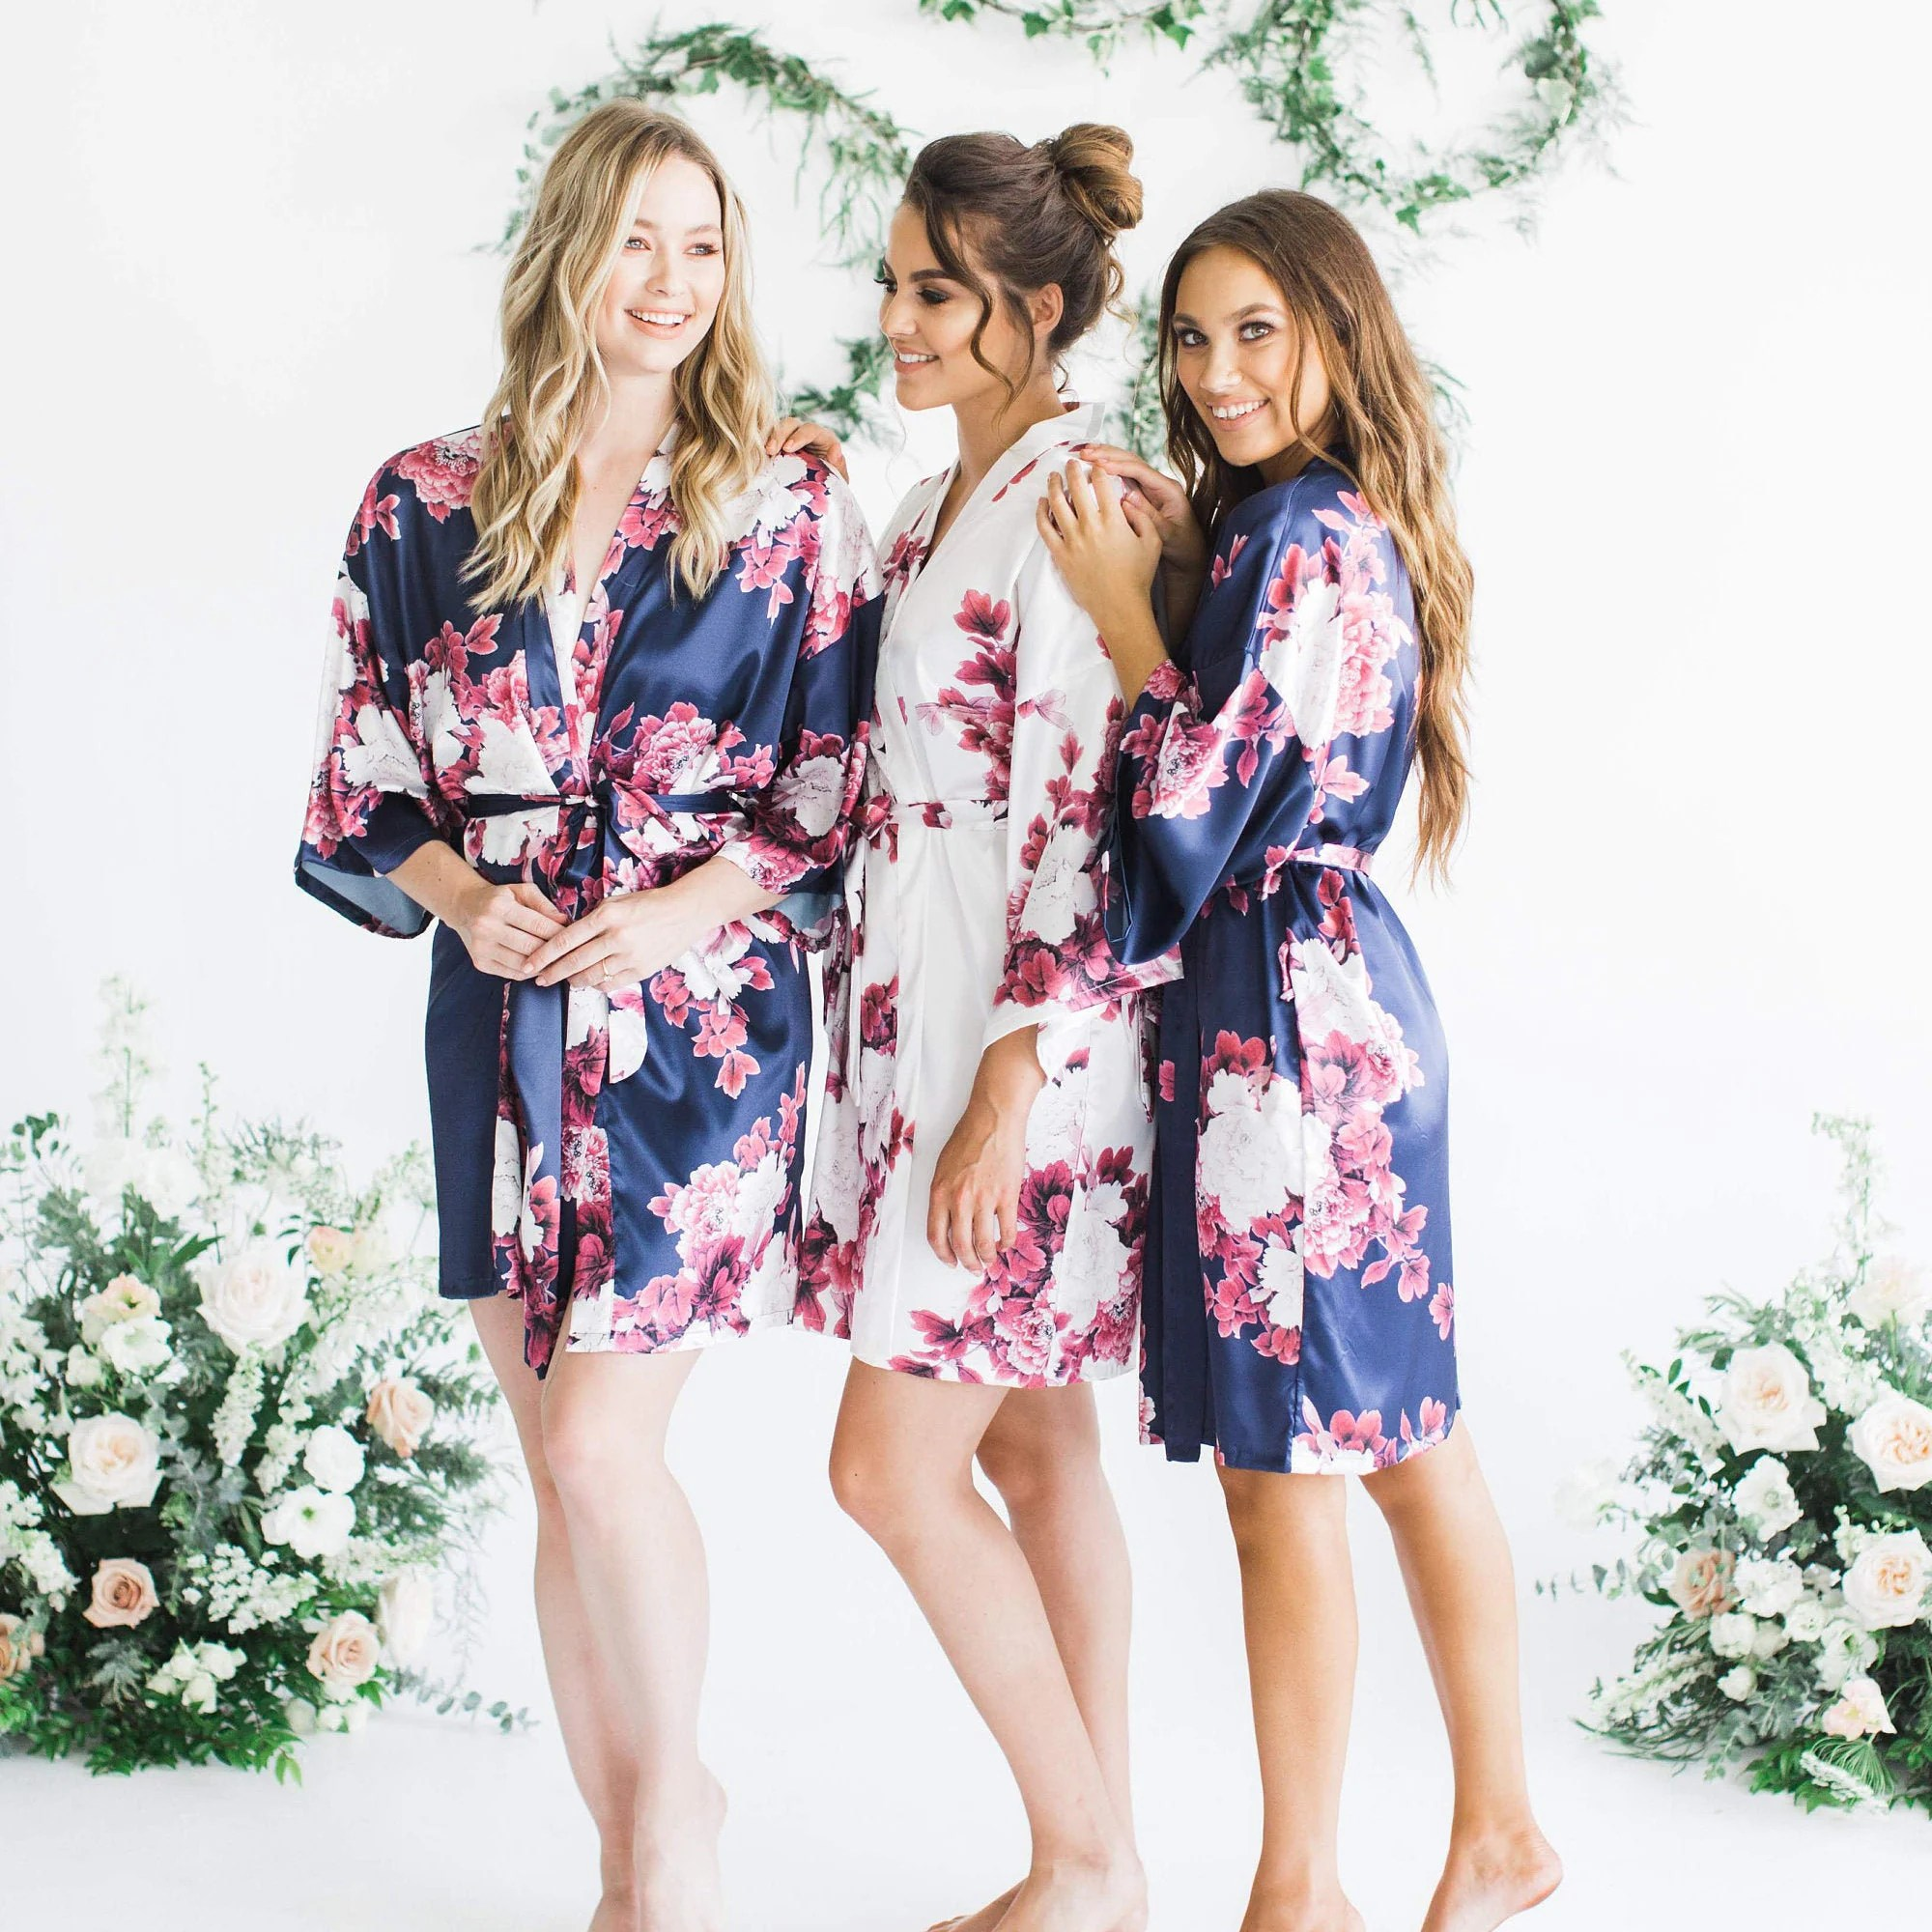 Silk Floral Robes Burgundy Floral Robes Bridesmaid Robes Navy